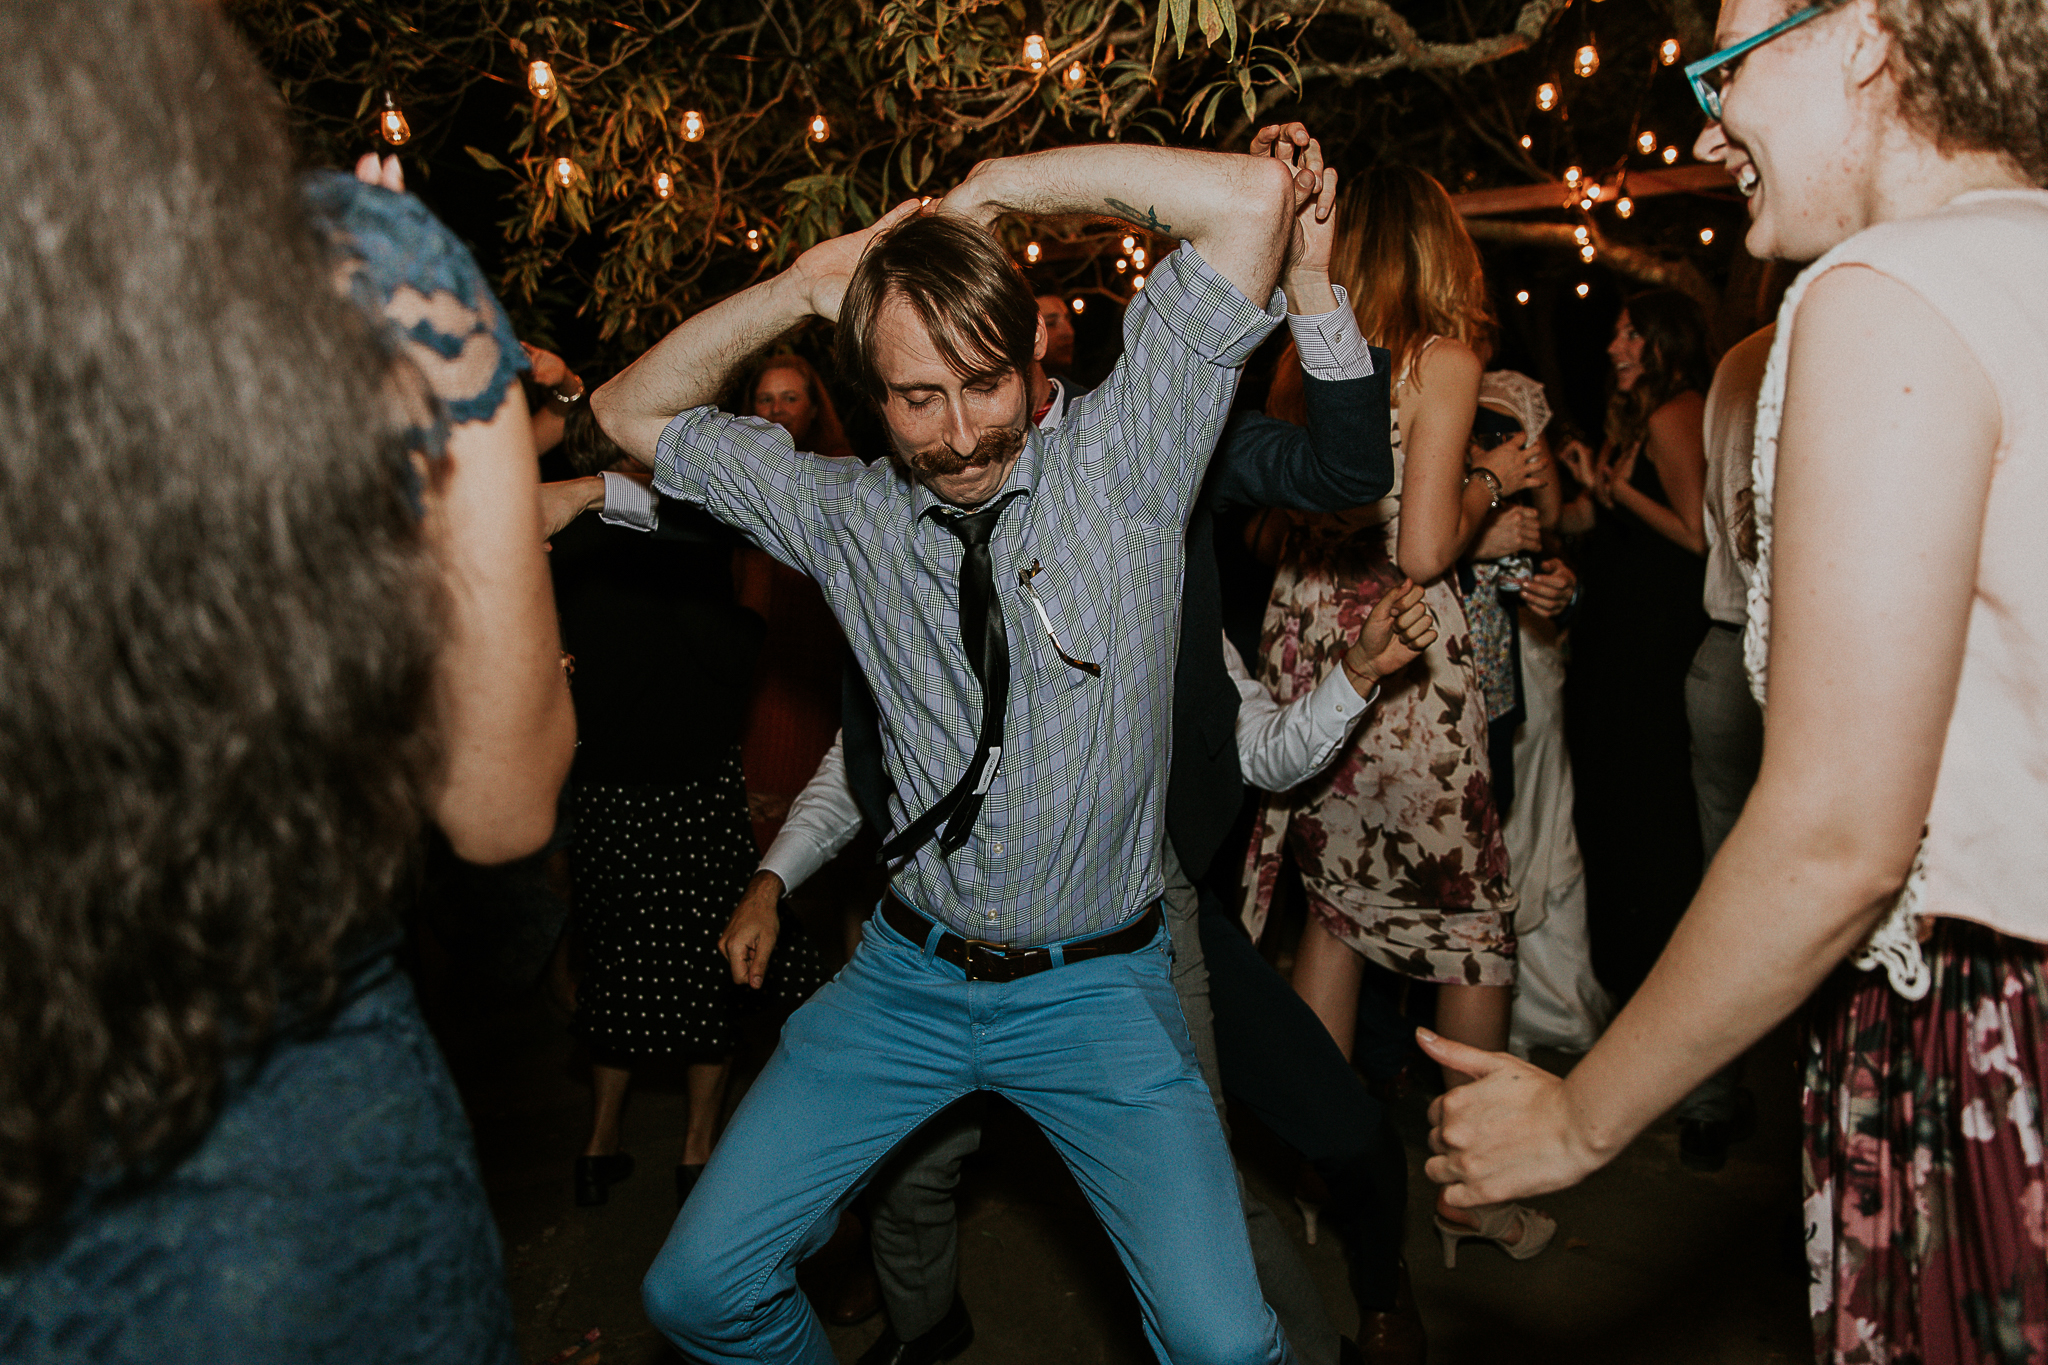 hipster getting down on dance floor